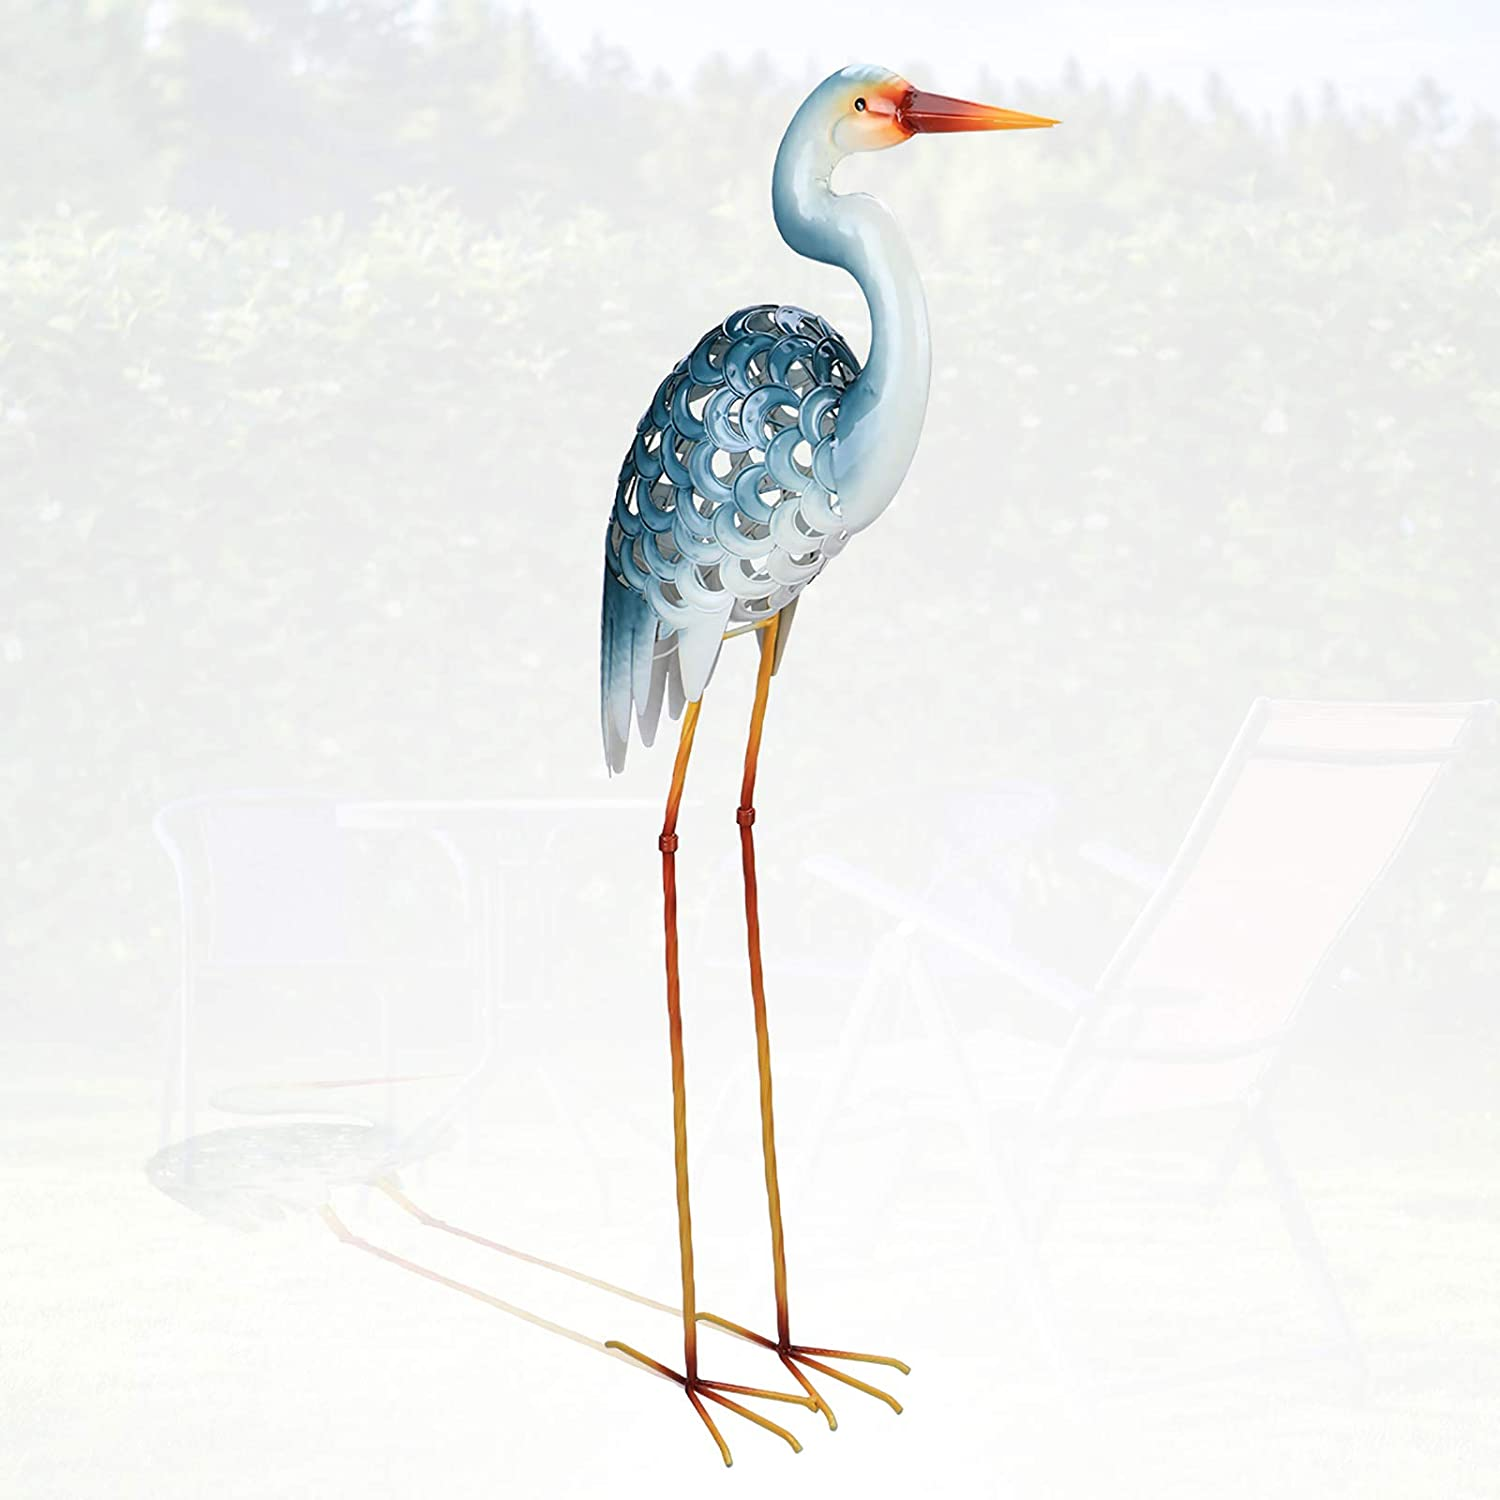 MUMTOP Garden Egret Statues 42.5 Inch Metal Standing Art Sculpture Decorative White Crane Garden Decor for Home, Patio and Lawn